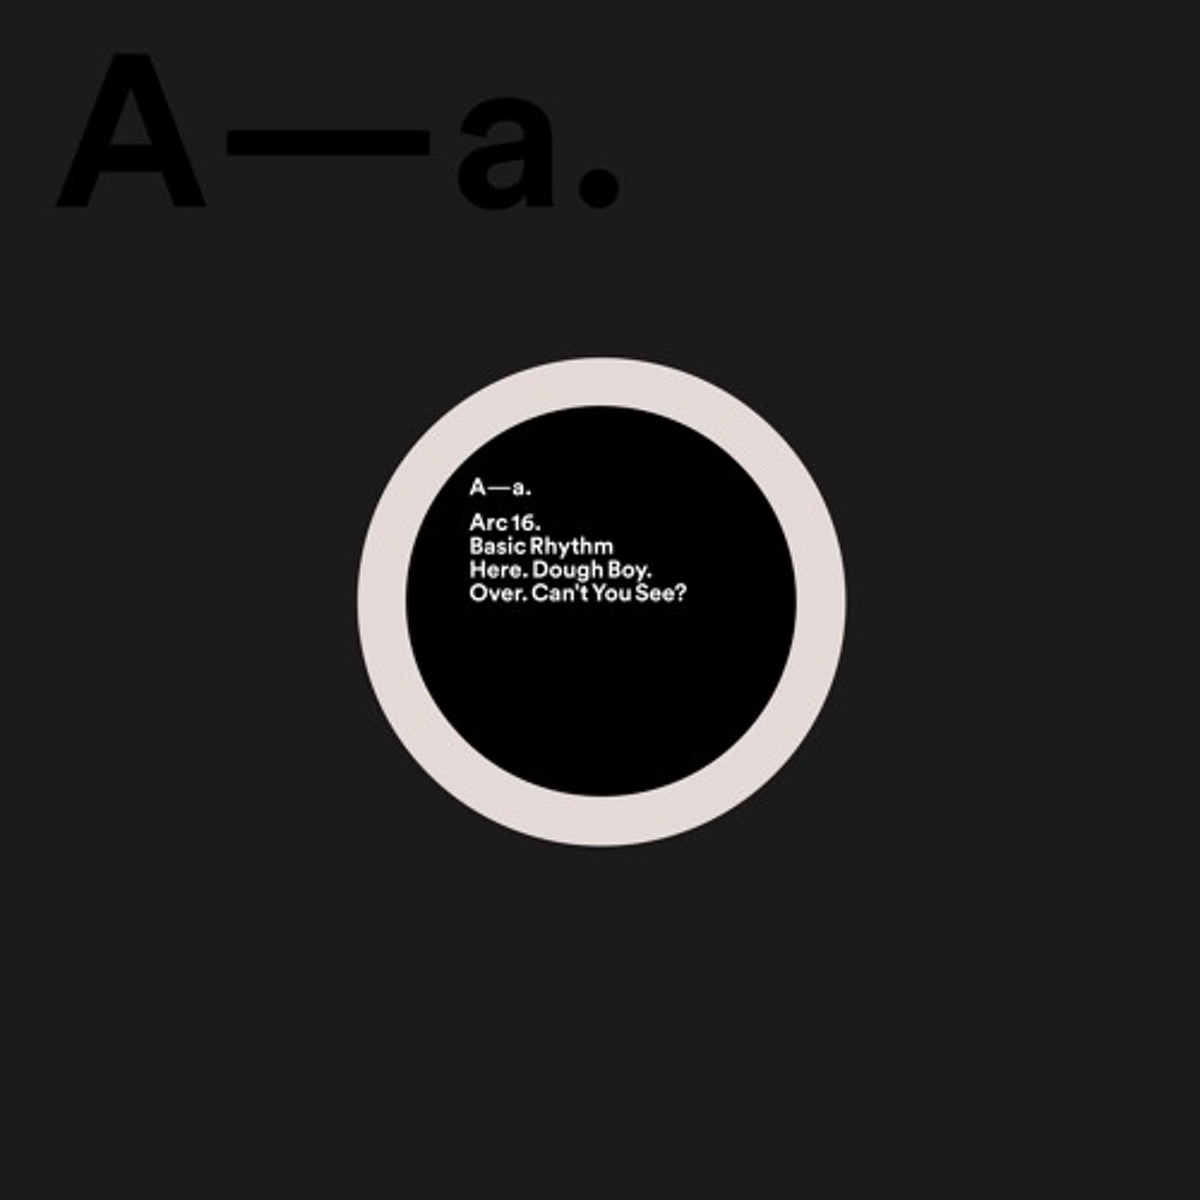 Basic Rhythm debuts on Arcola with Dough Boy / Can't You See